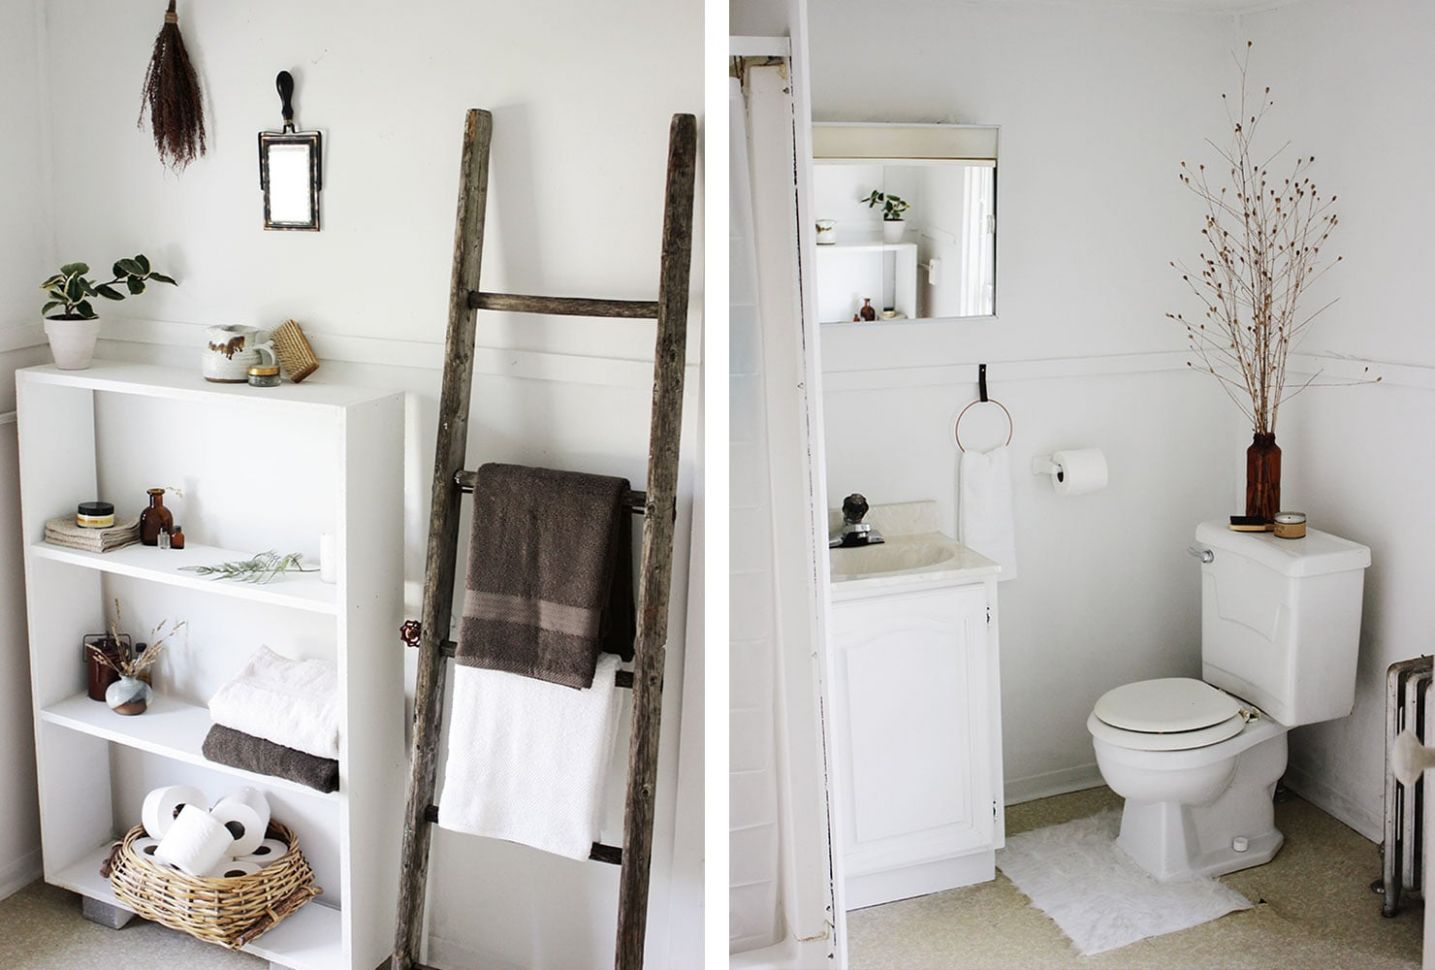 10 Ways To Decorate A Small Bathroom | Shutterfly